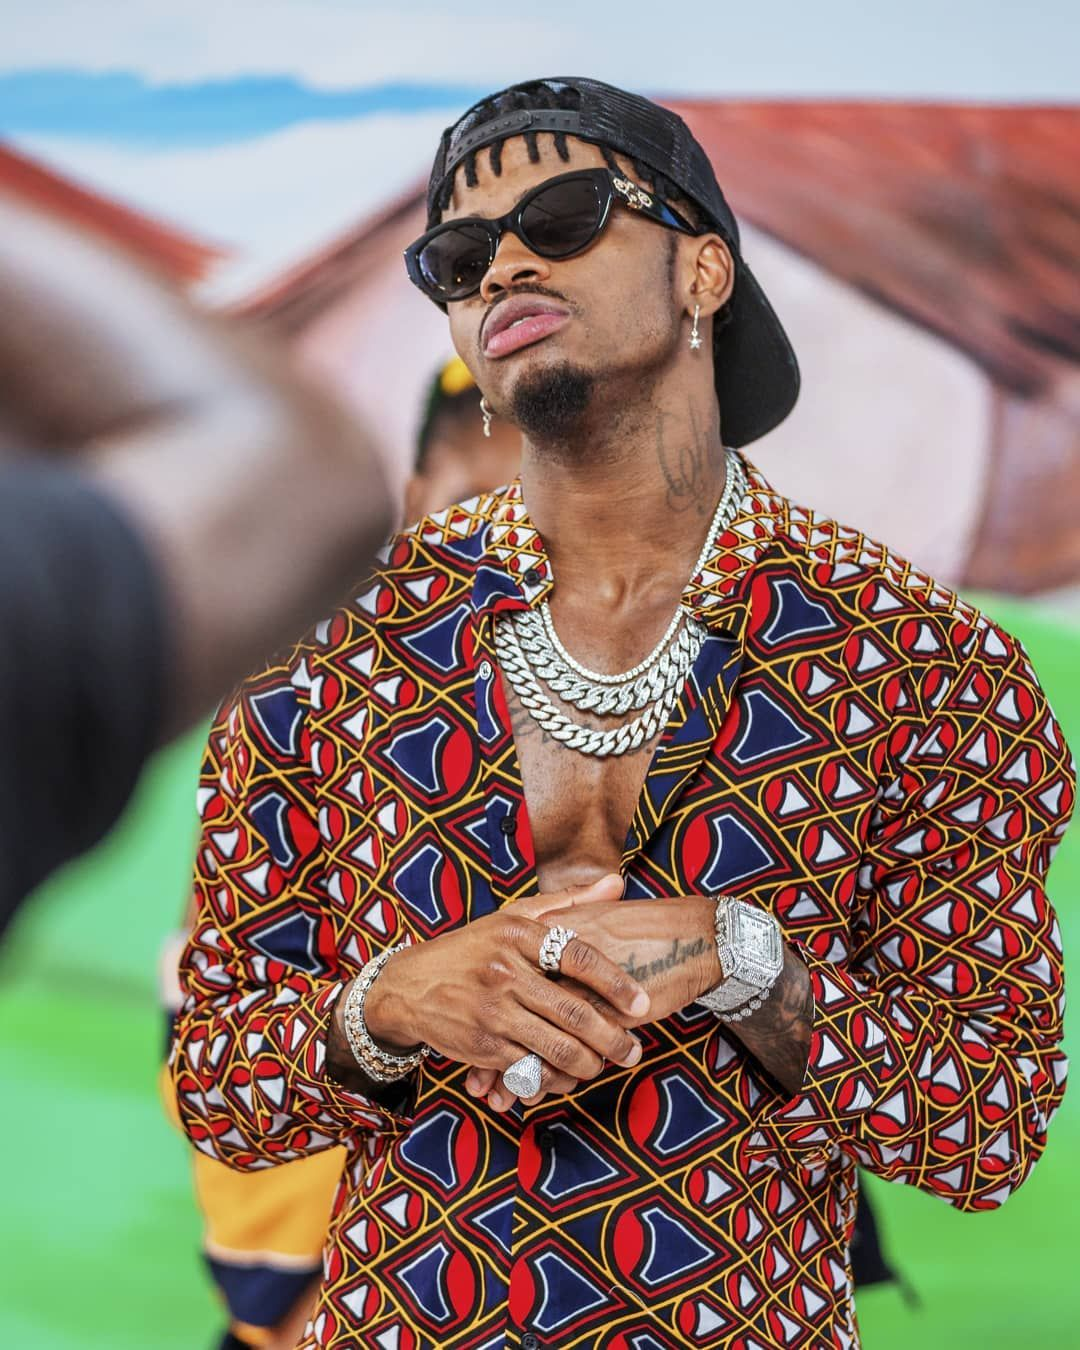 Over 30,000 fans have already signed the petition to have Diamond Platnumz dumped from the prestigious awards